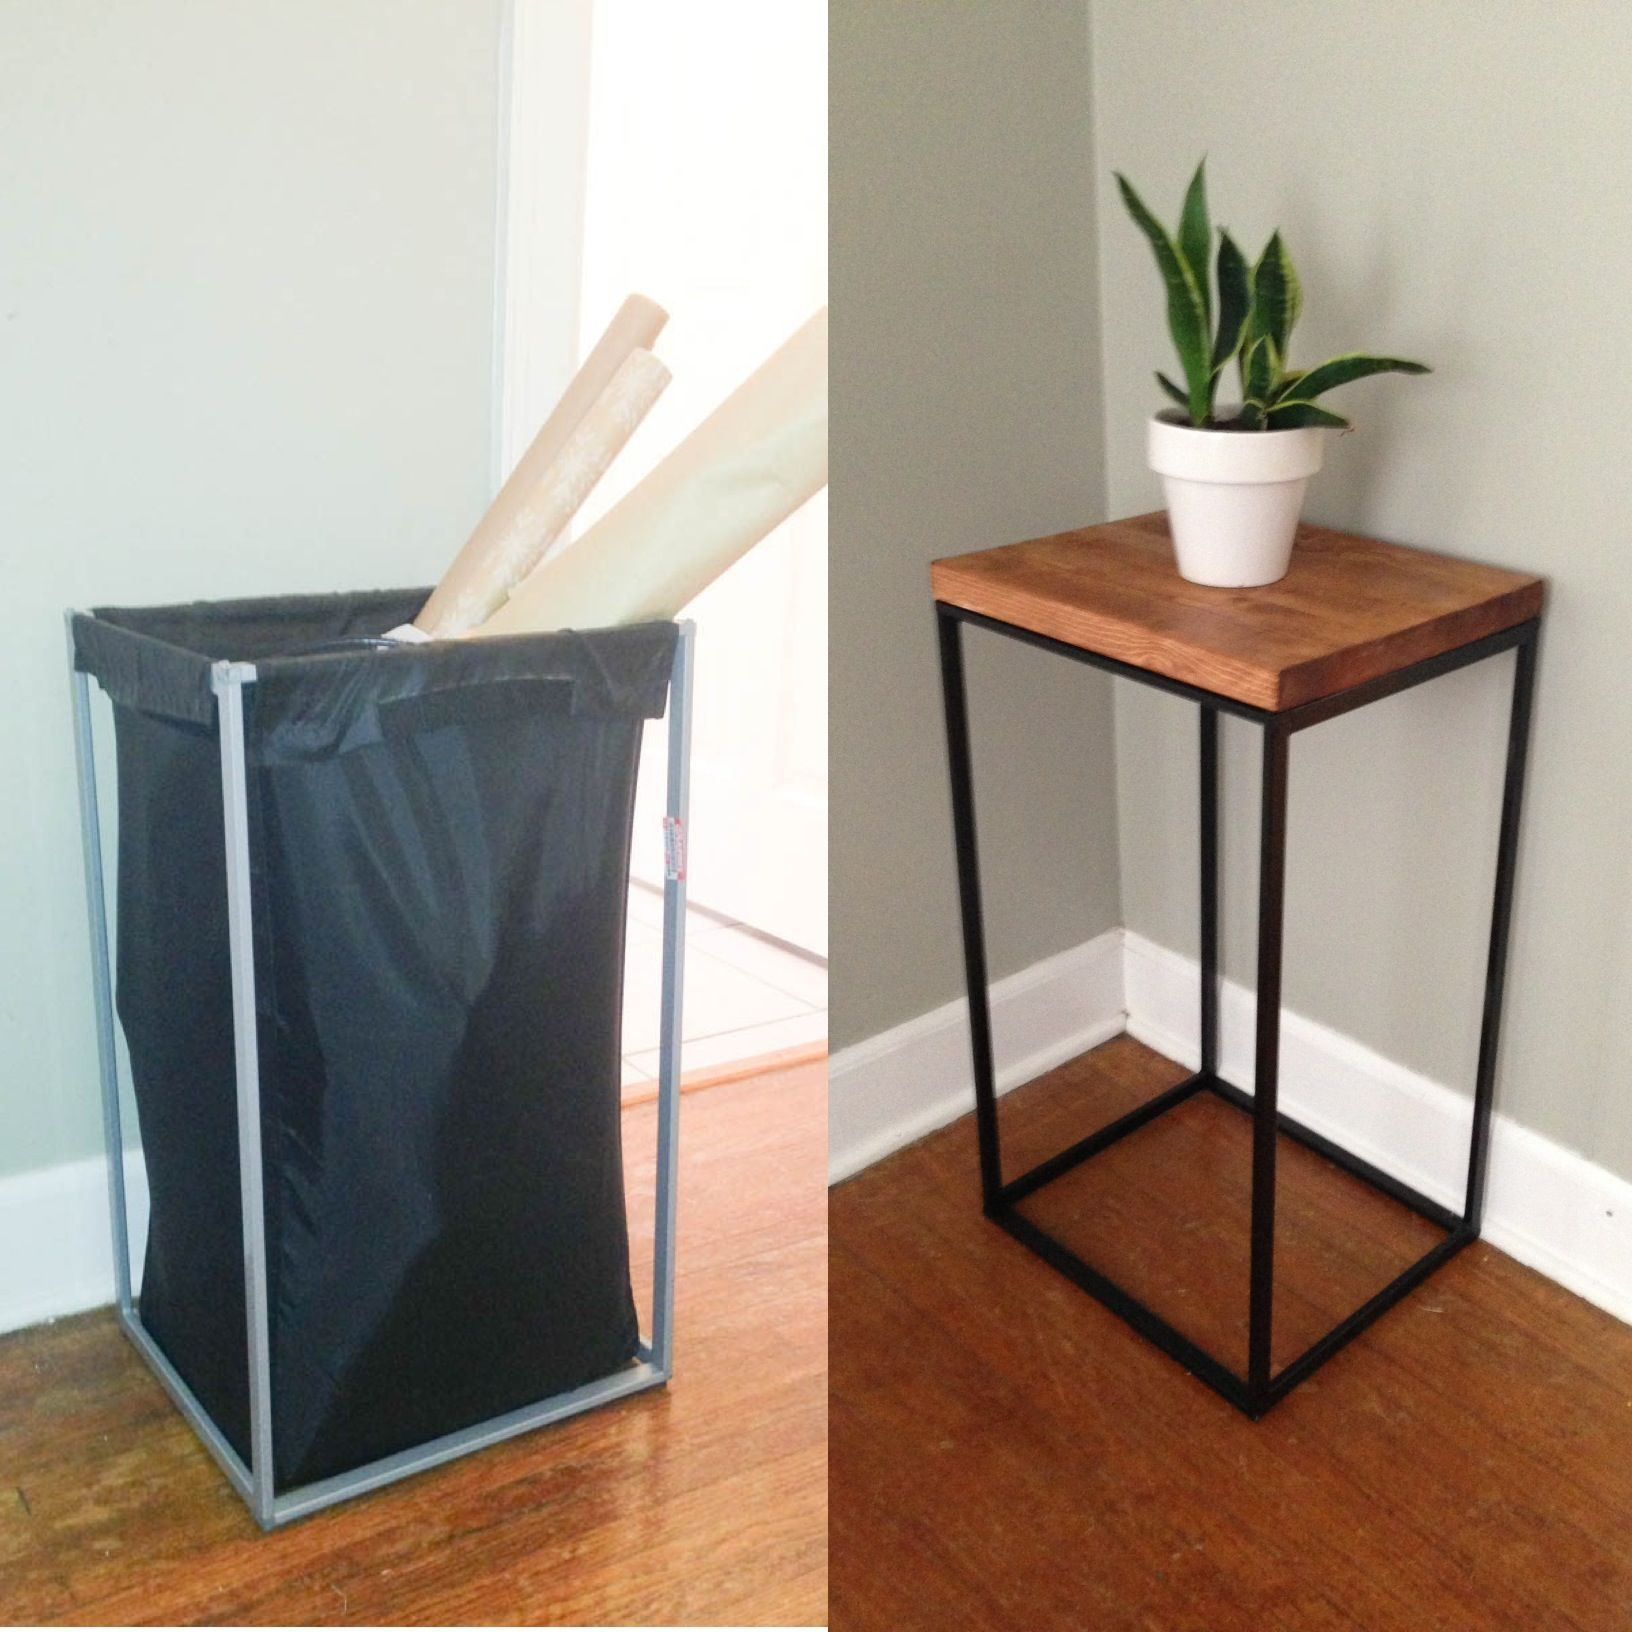 diy side table from old ikea laundry hamper// the clever